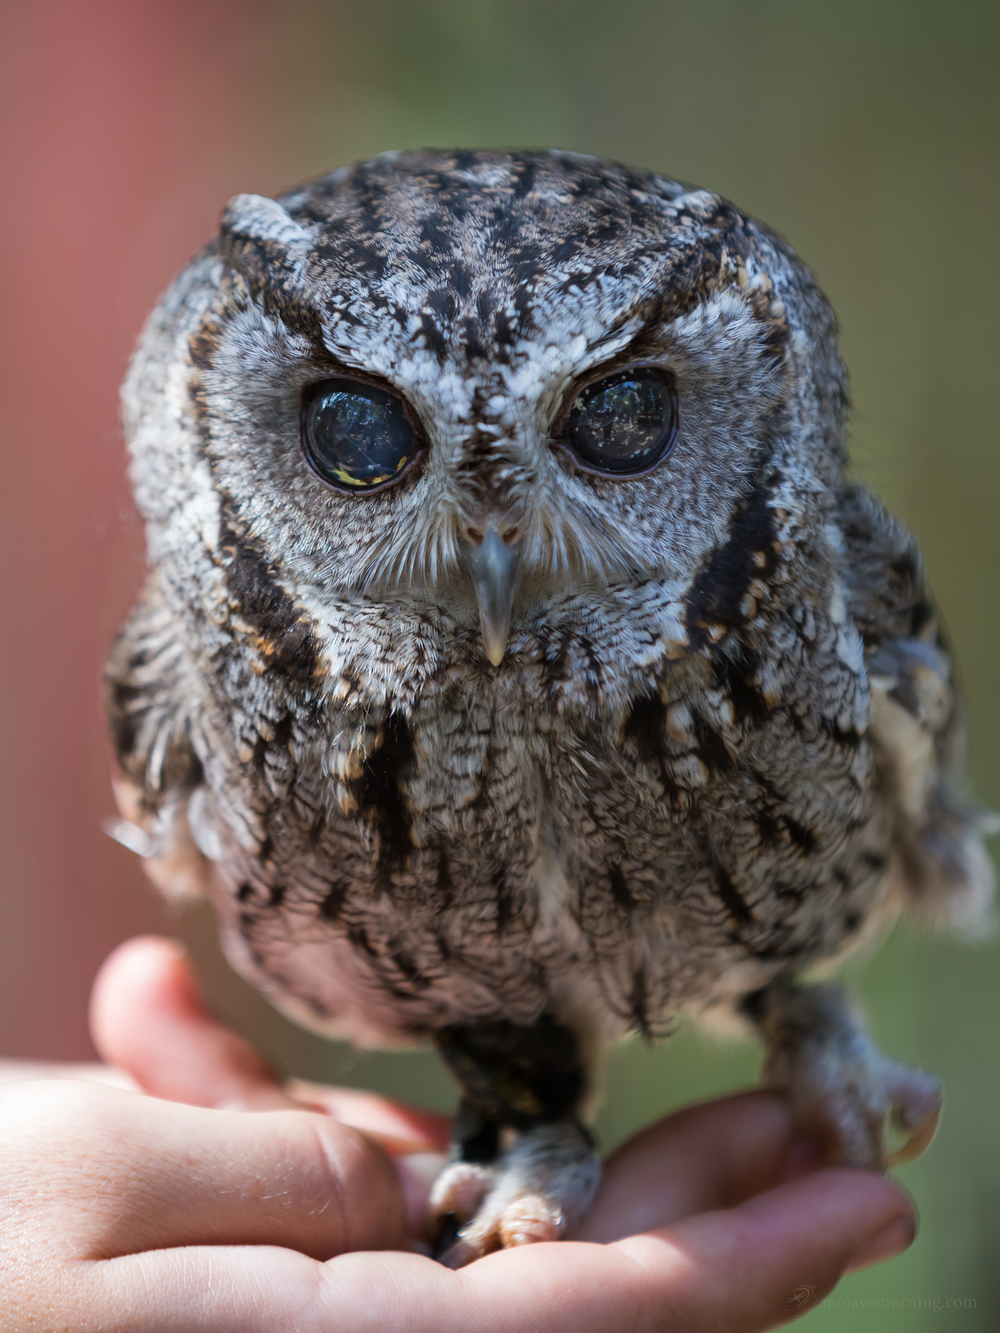 Did you know screech owls are cute as buttons? Not so cute to field mice, I'm sure. The speckles in his eyes are not reflections of something outside, this is how his eyes appear, and part of the symptoms of his blindness.